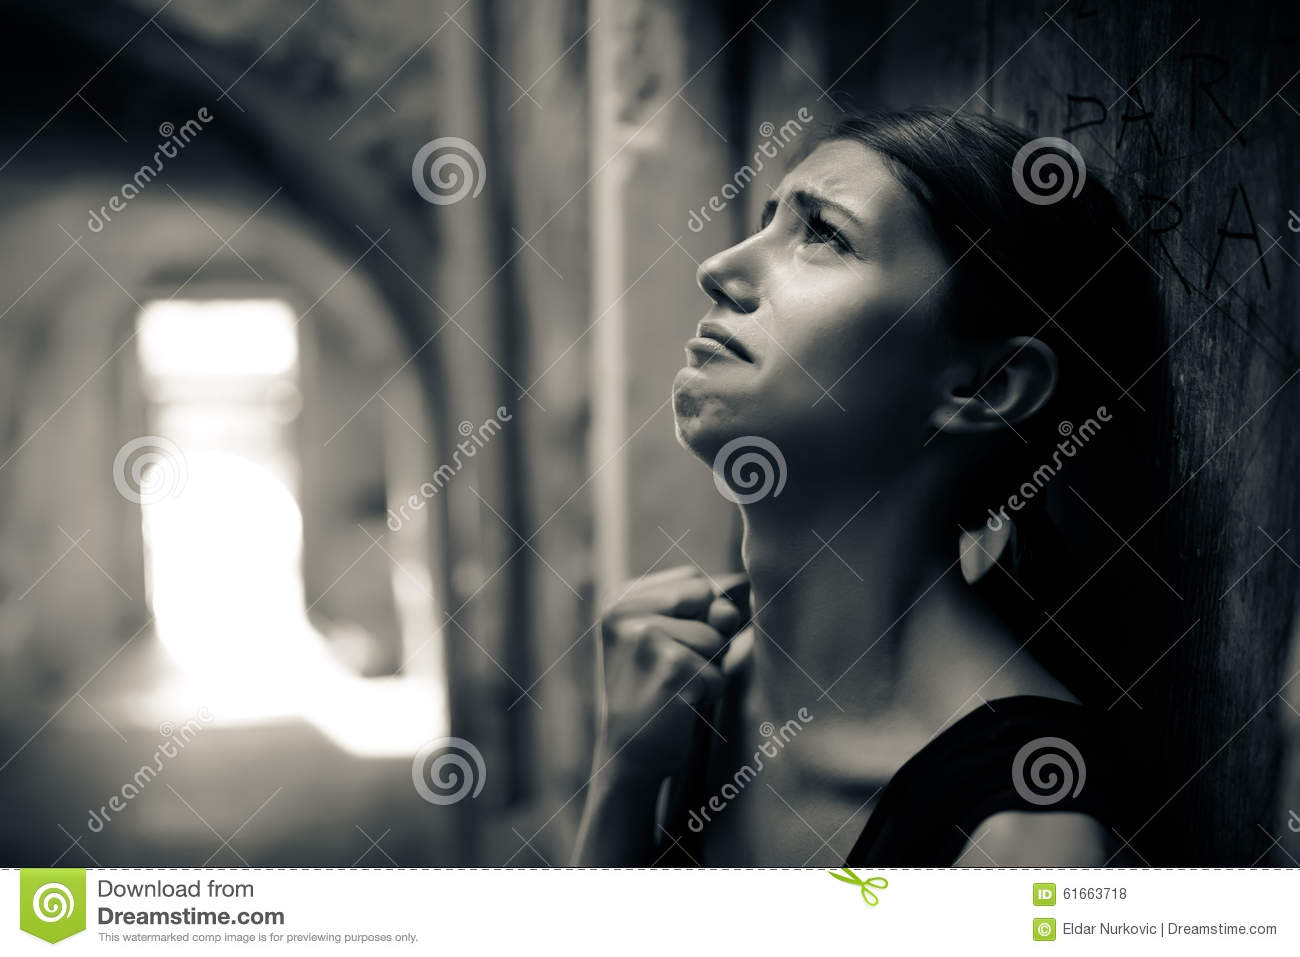 Woman with sad face crying sad expressionsad emotiondespairsadness